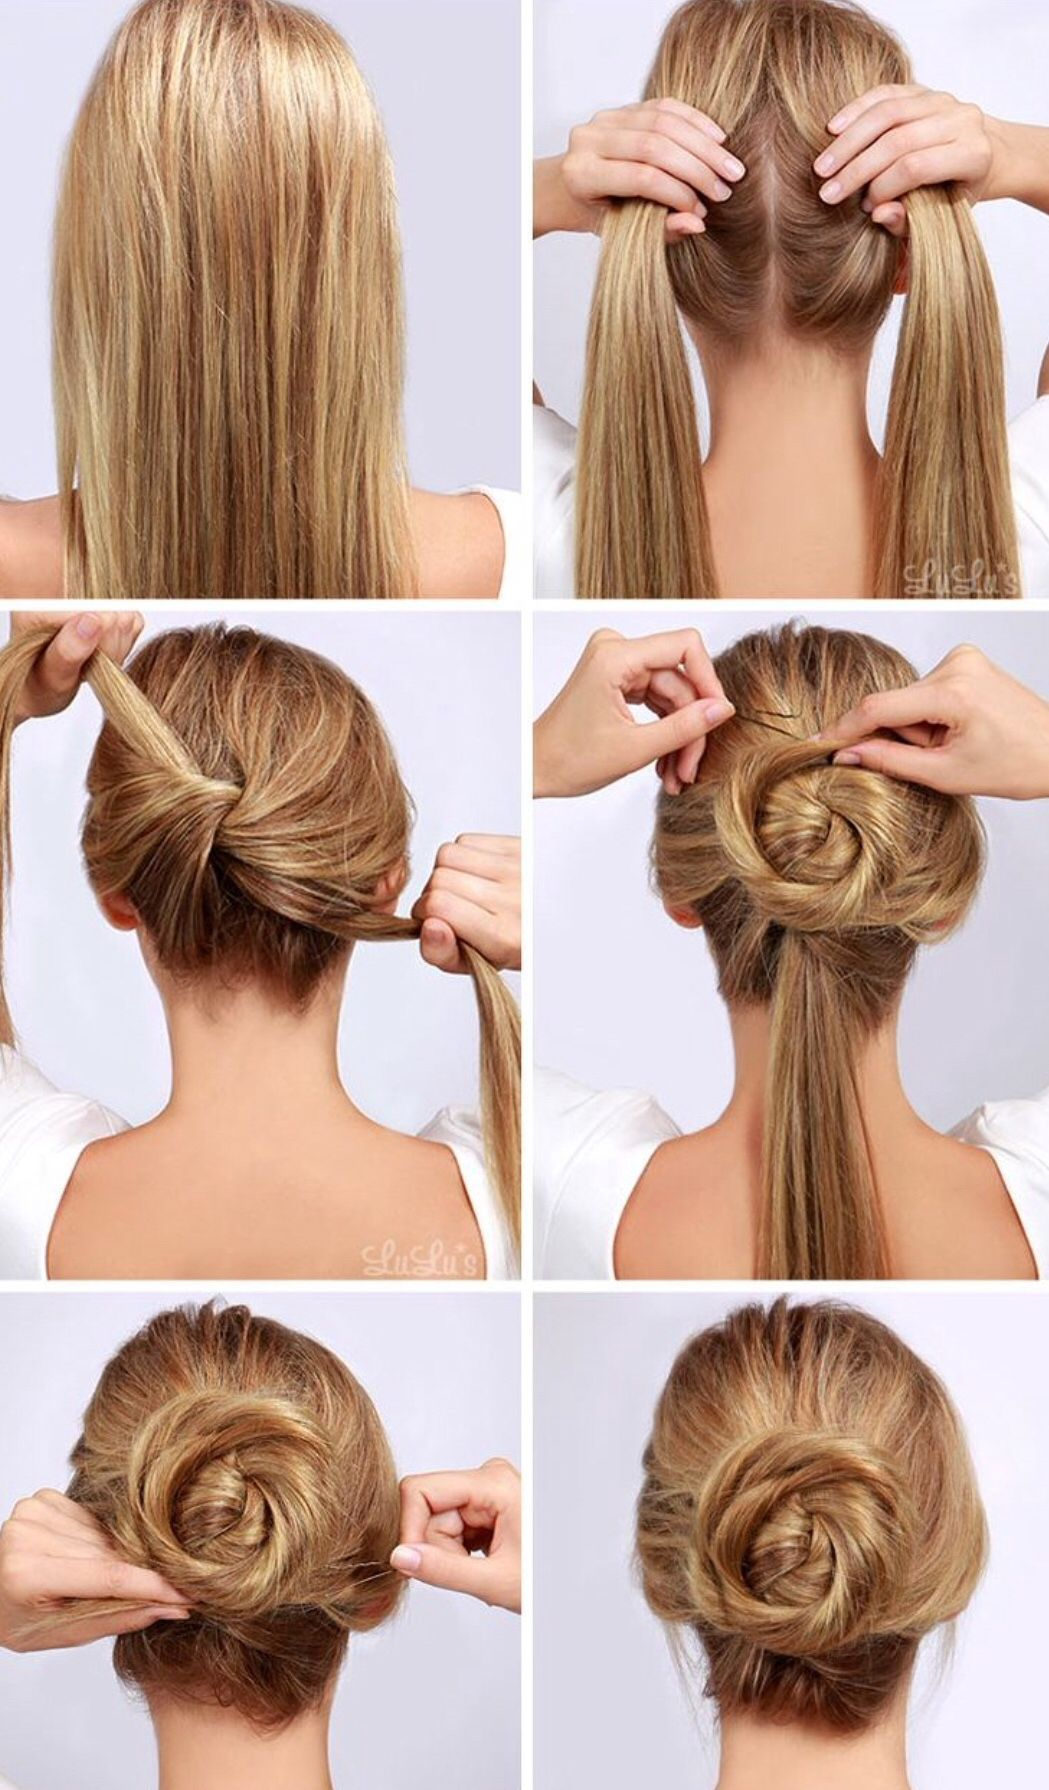 Cute updo hairstyles pinterest updo hair style and military bun twisted bun hair tutorial offers a few simple steps to make your dream hair style a reality baditri Gallery